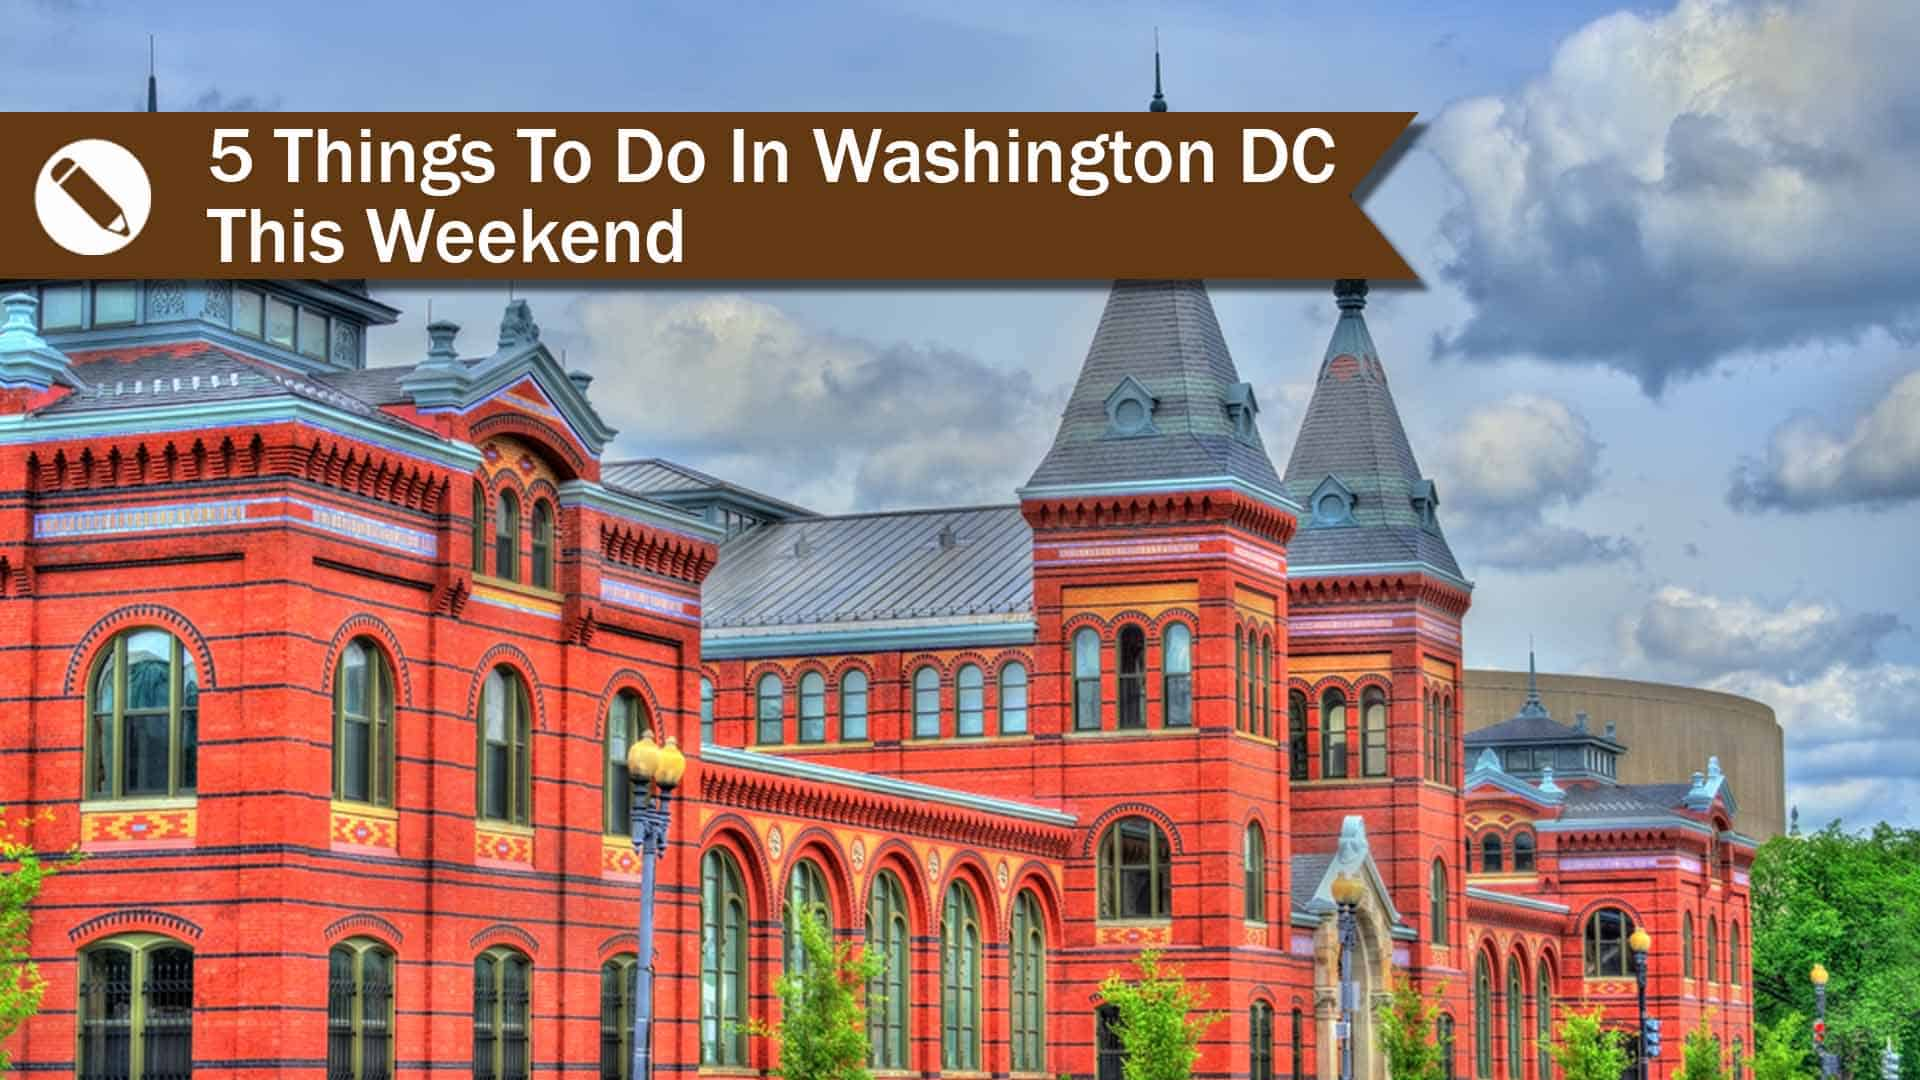 Things to do in Washington DC this weekend